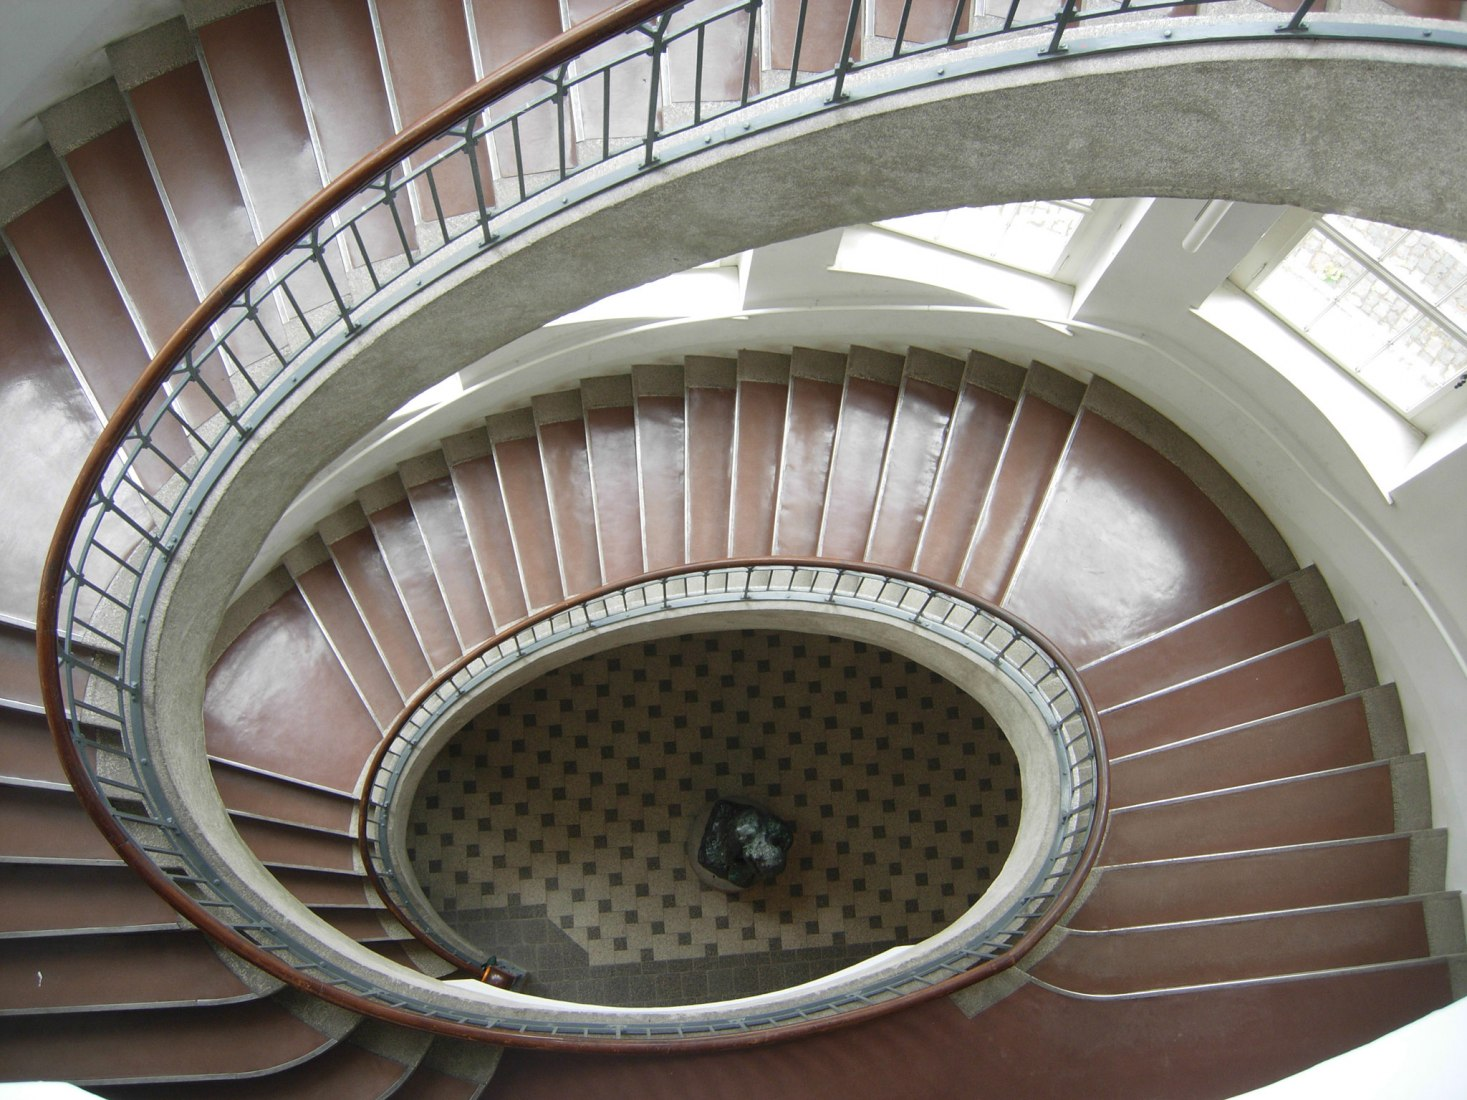 Staircase at the Bauhaus building in Weimar by Henry Van de Velde. Photograph by Josenia Hervás y Heras.